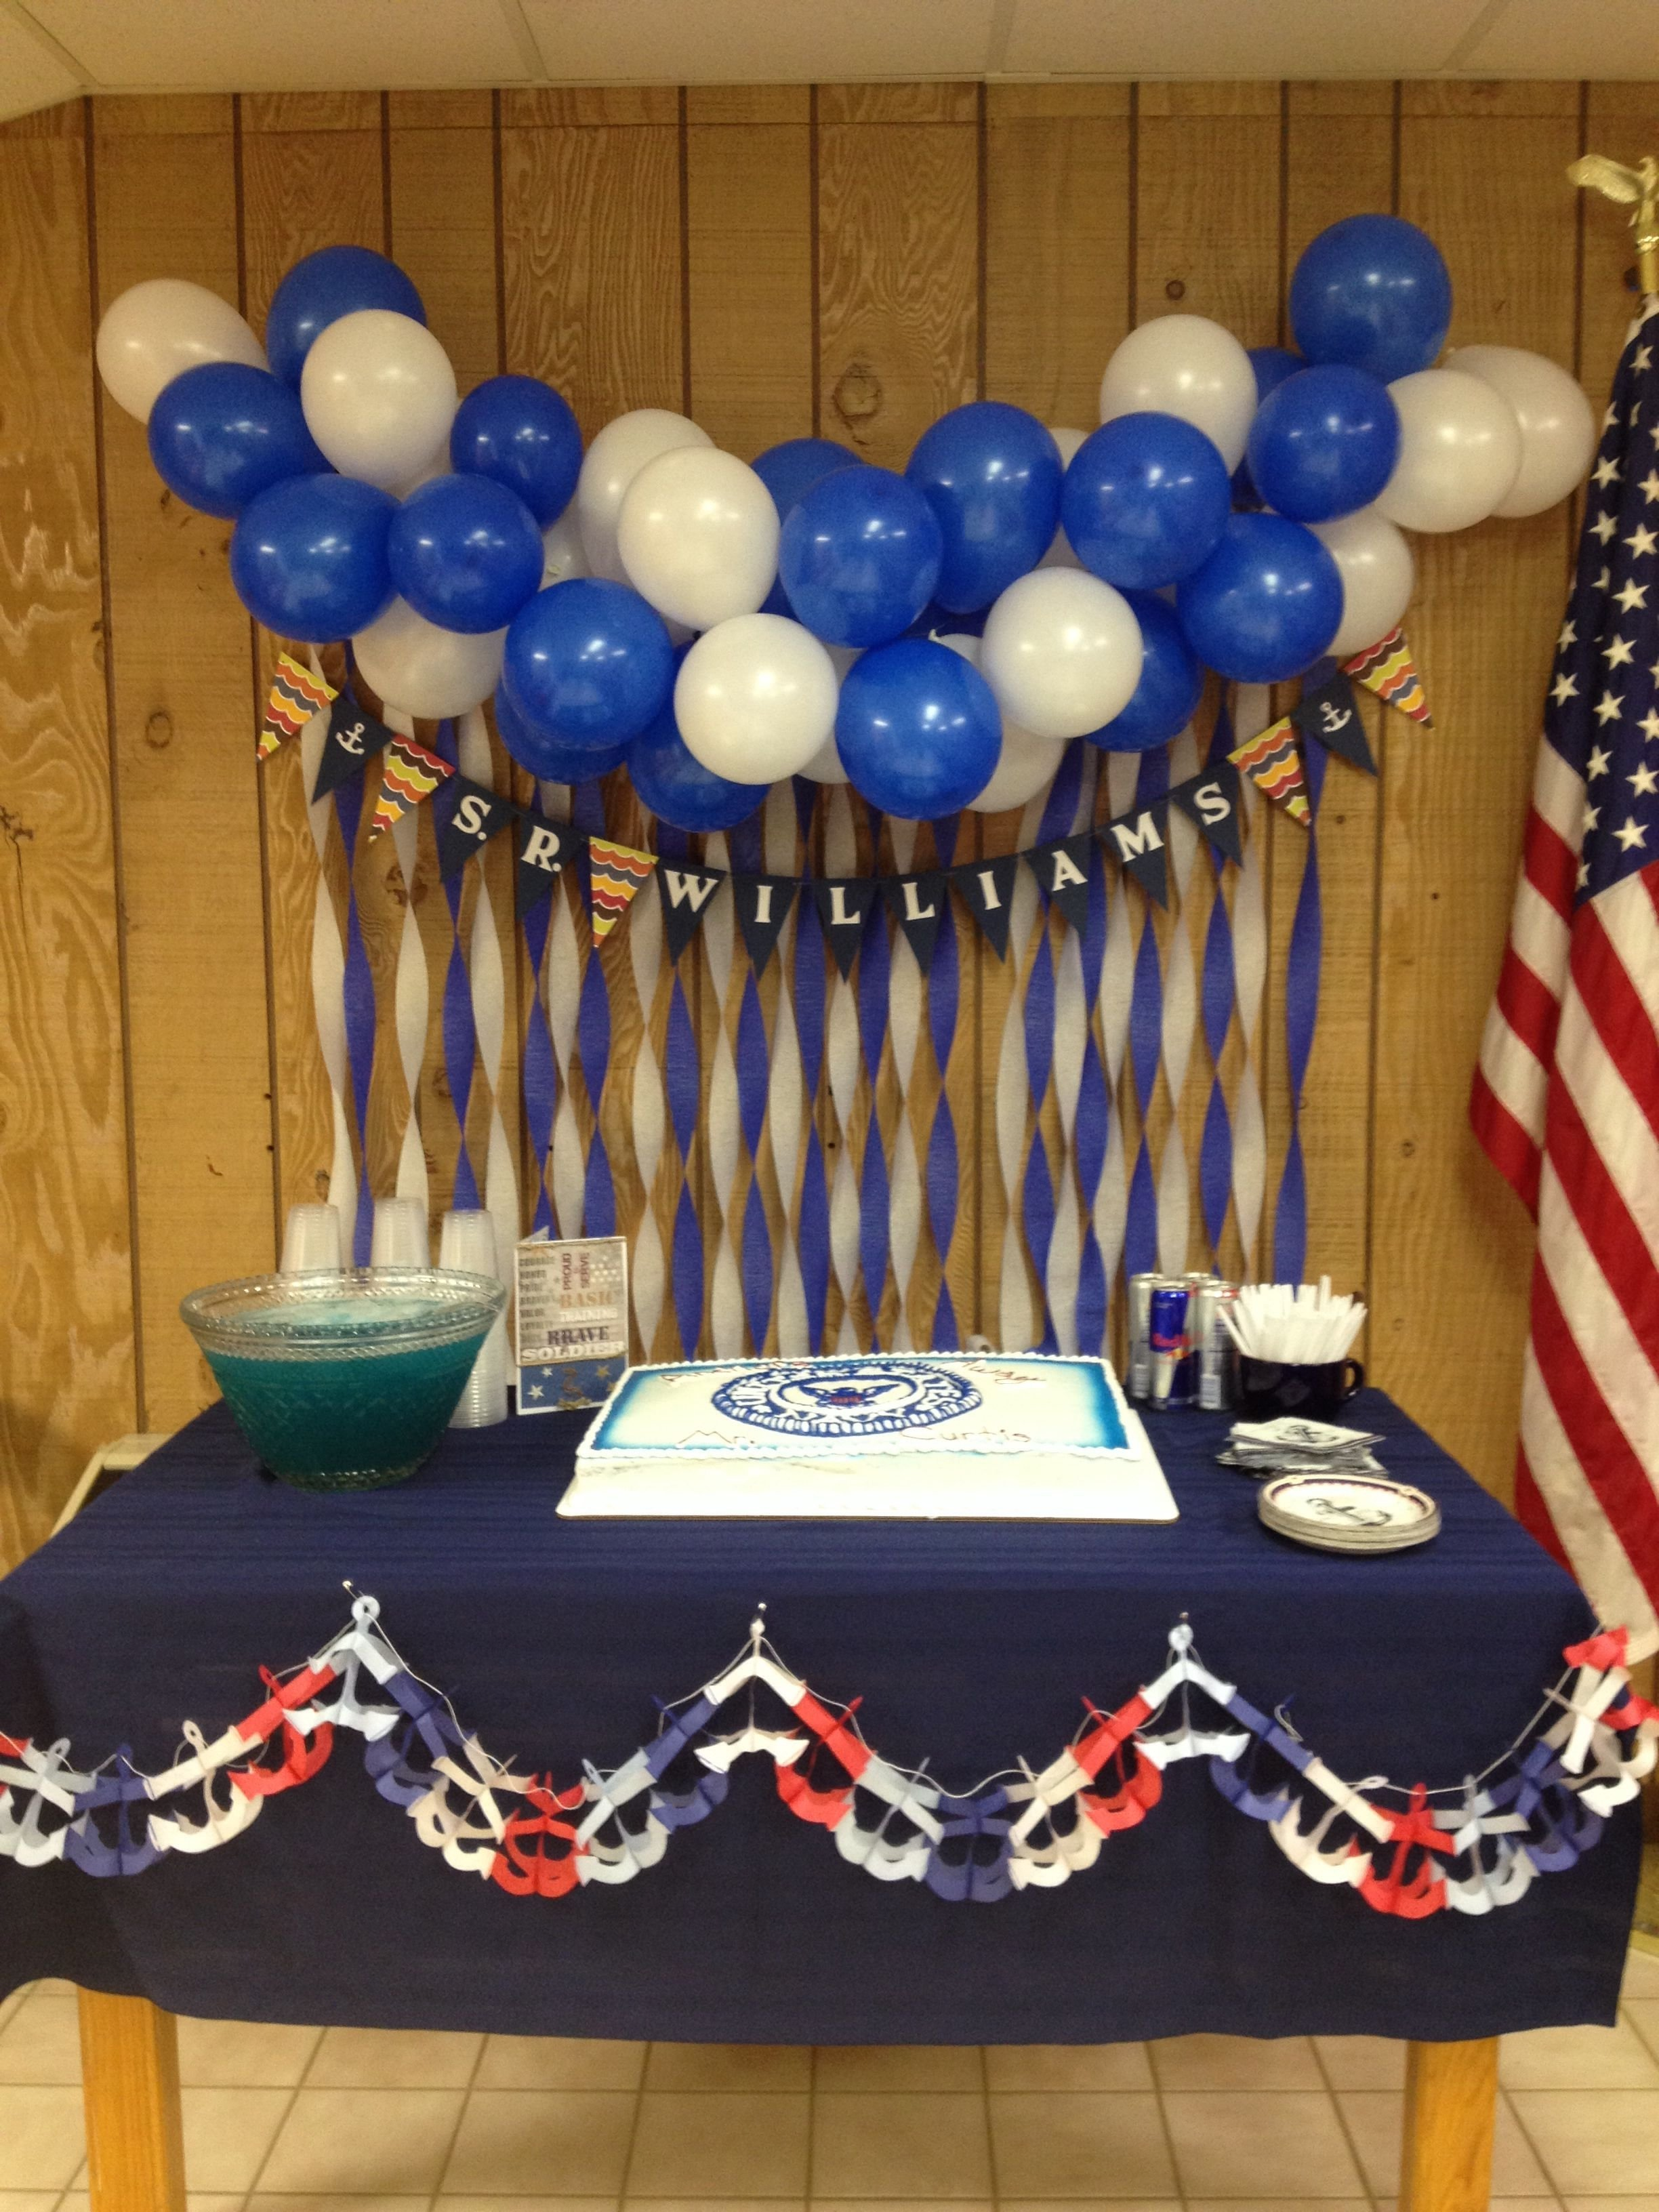 10 Most Recommended Going Away Party Ideas Military navy going away party decorations party ideas pinterest 2021